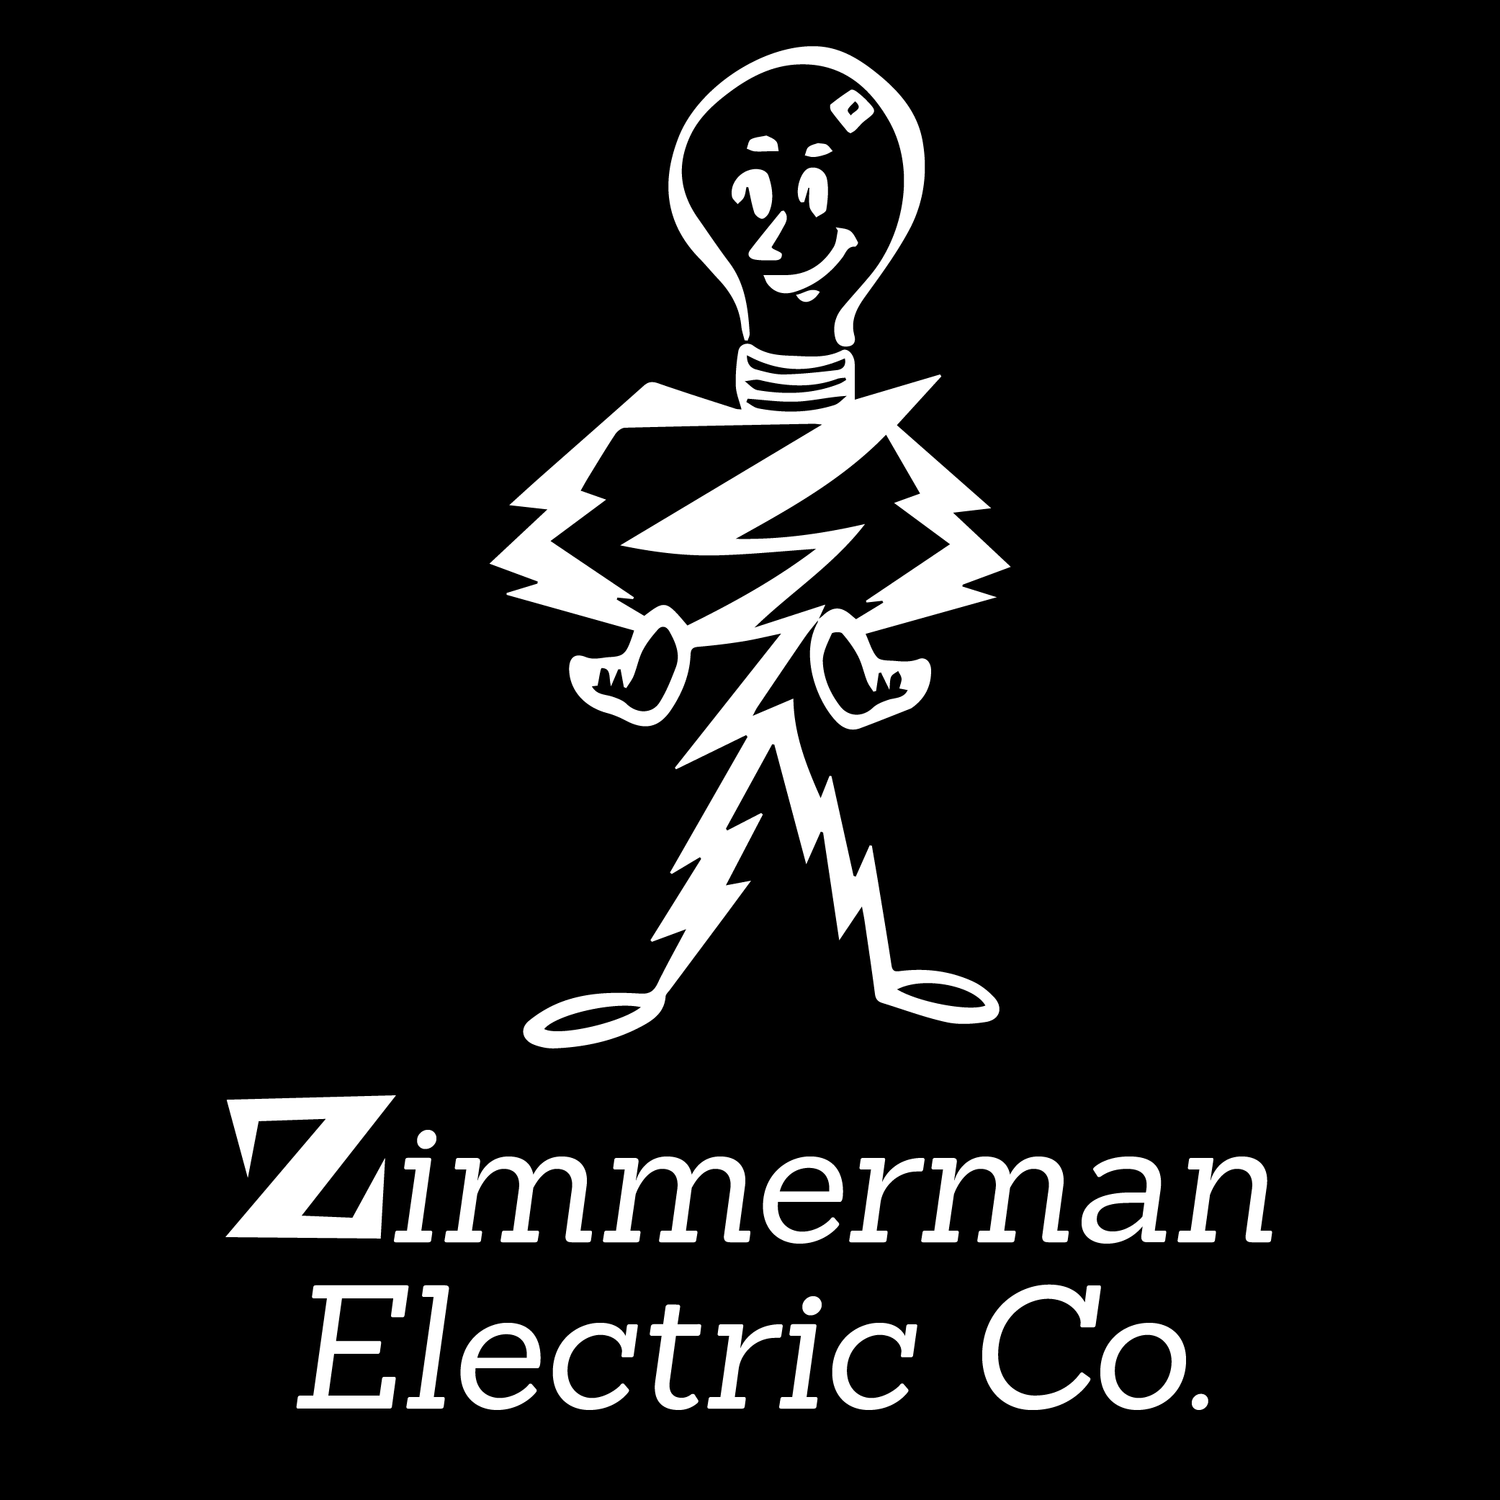 ZImmerman Electric Company